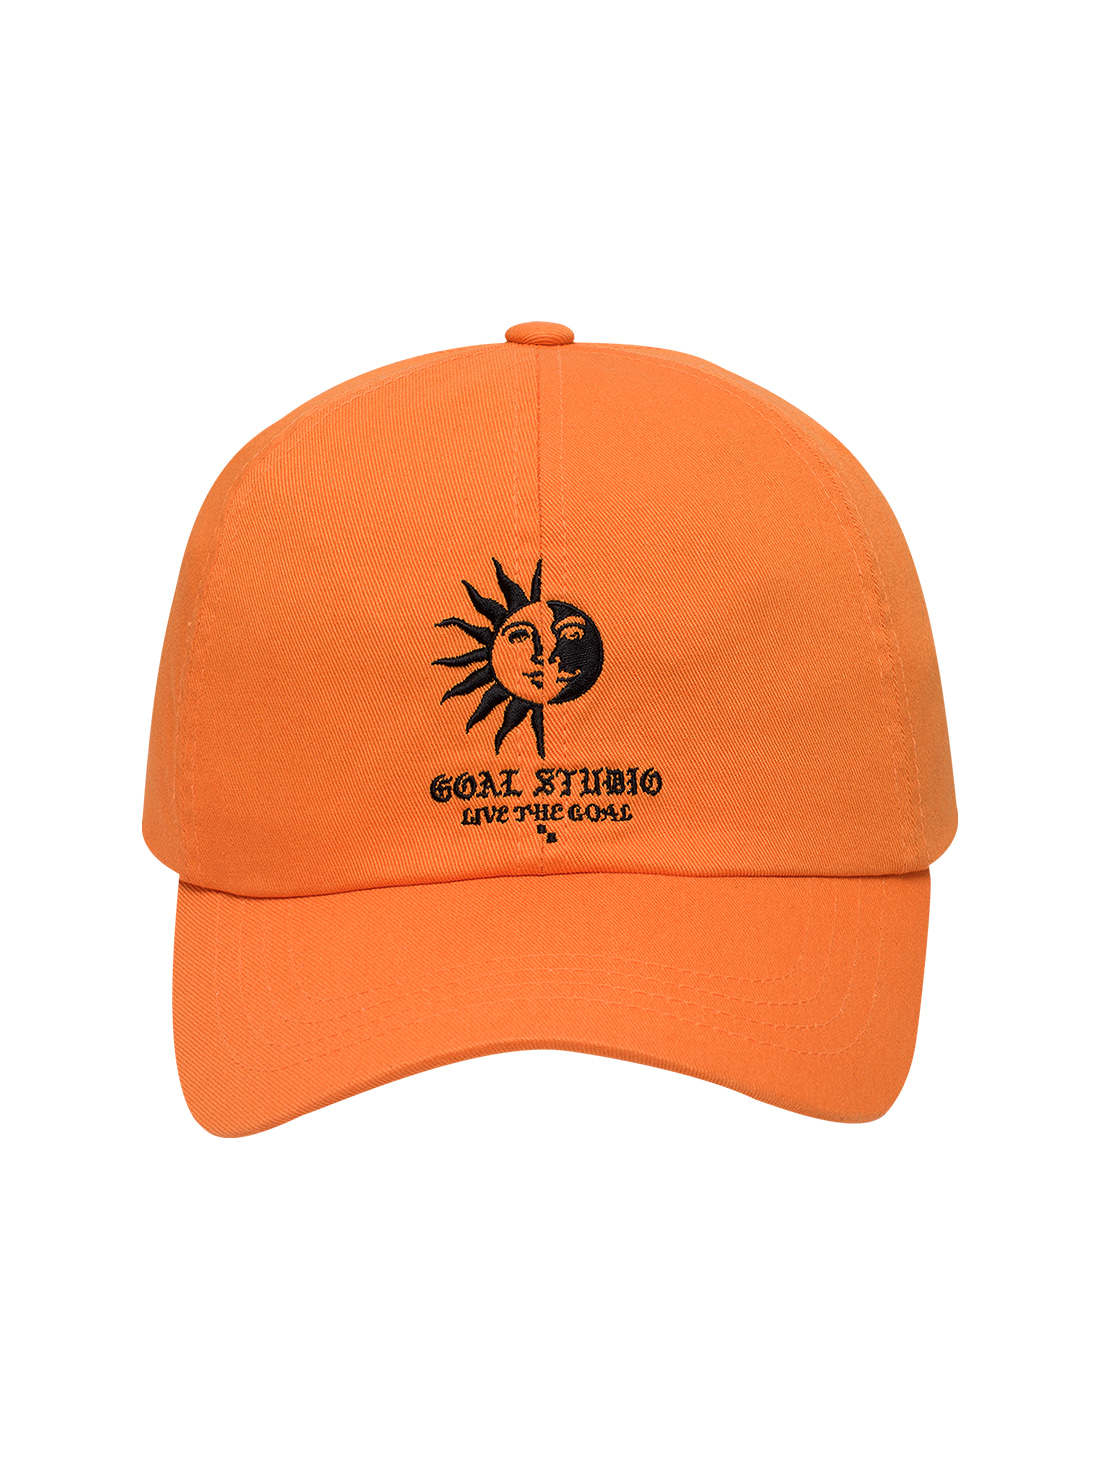 GOALSTUDIO MC BALL CAP - ORANGE